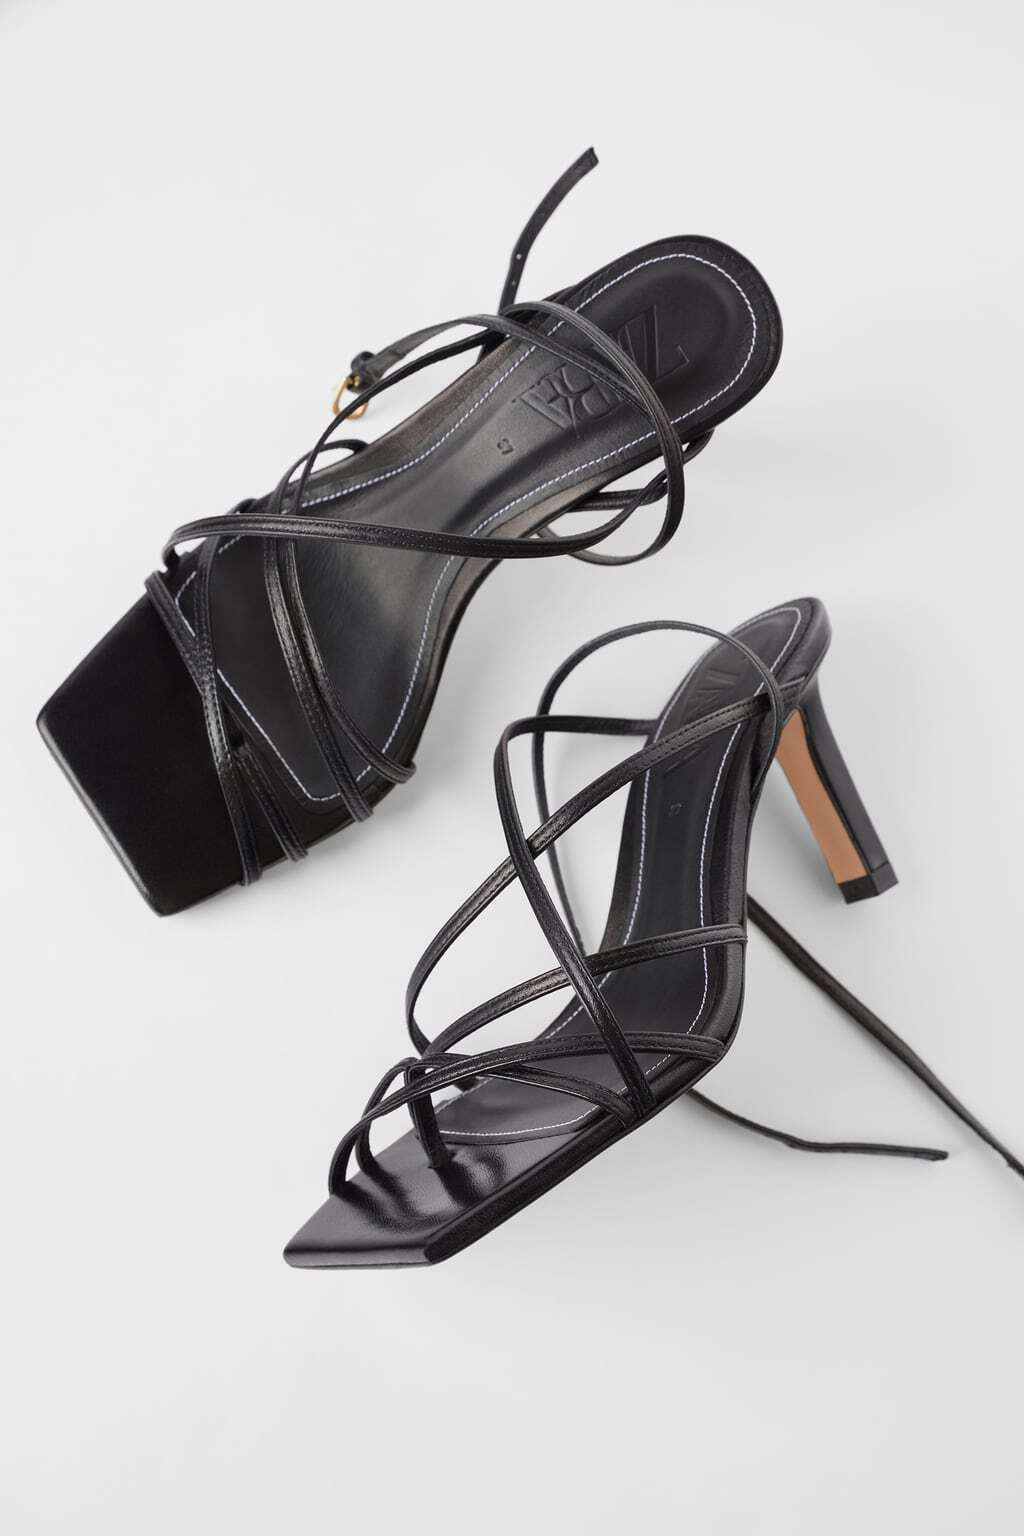 Square toe heeled sandals in black with long leather straps